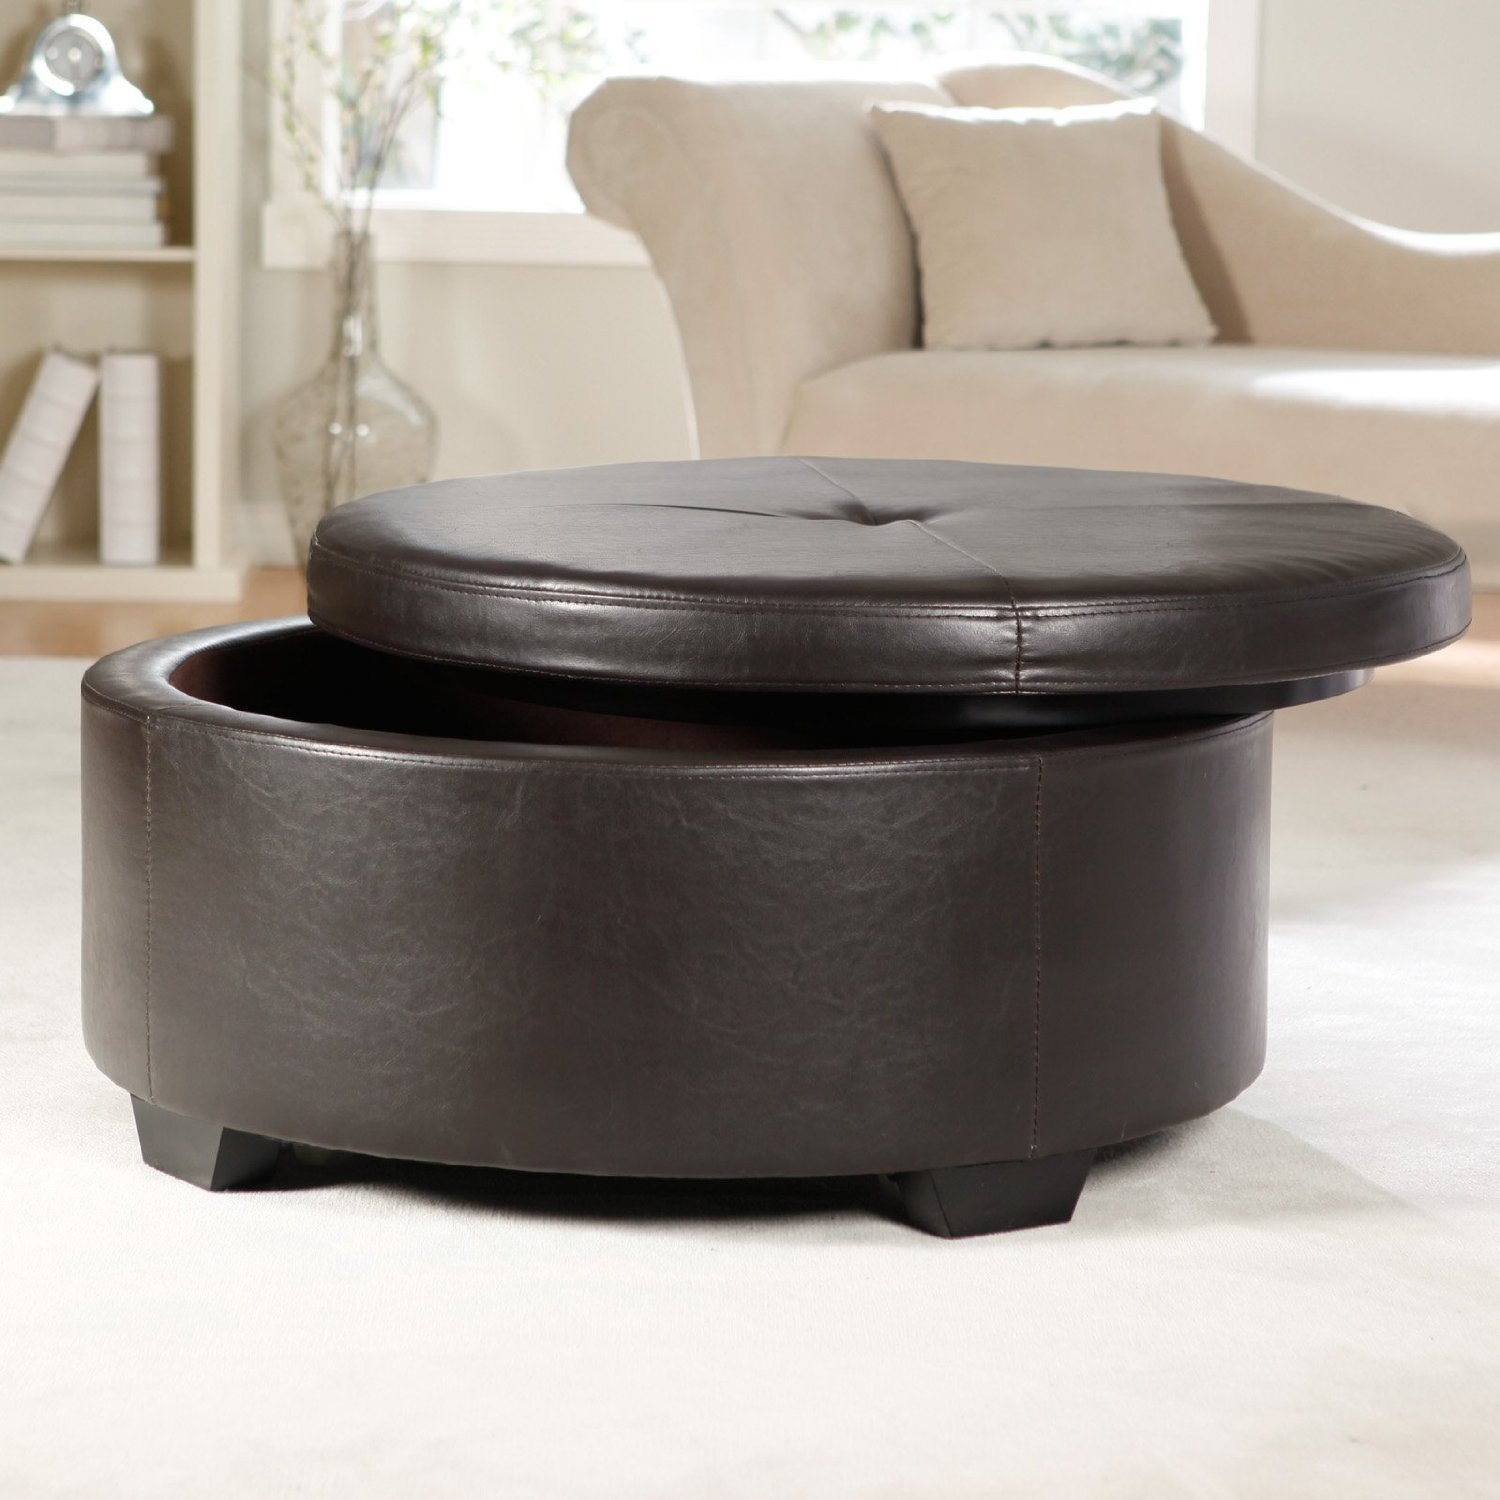 Round Padded Coffee Table Upholstered Coffee Tables Tufted Leather Padded Ottoman With Drawers Furniture (Image 8 of 10)